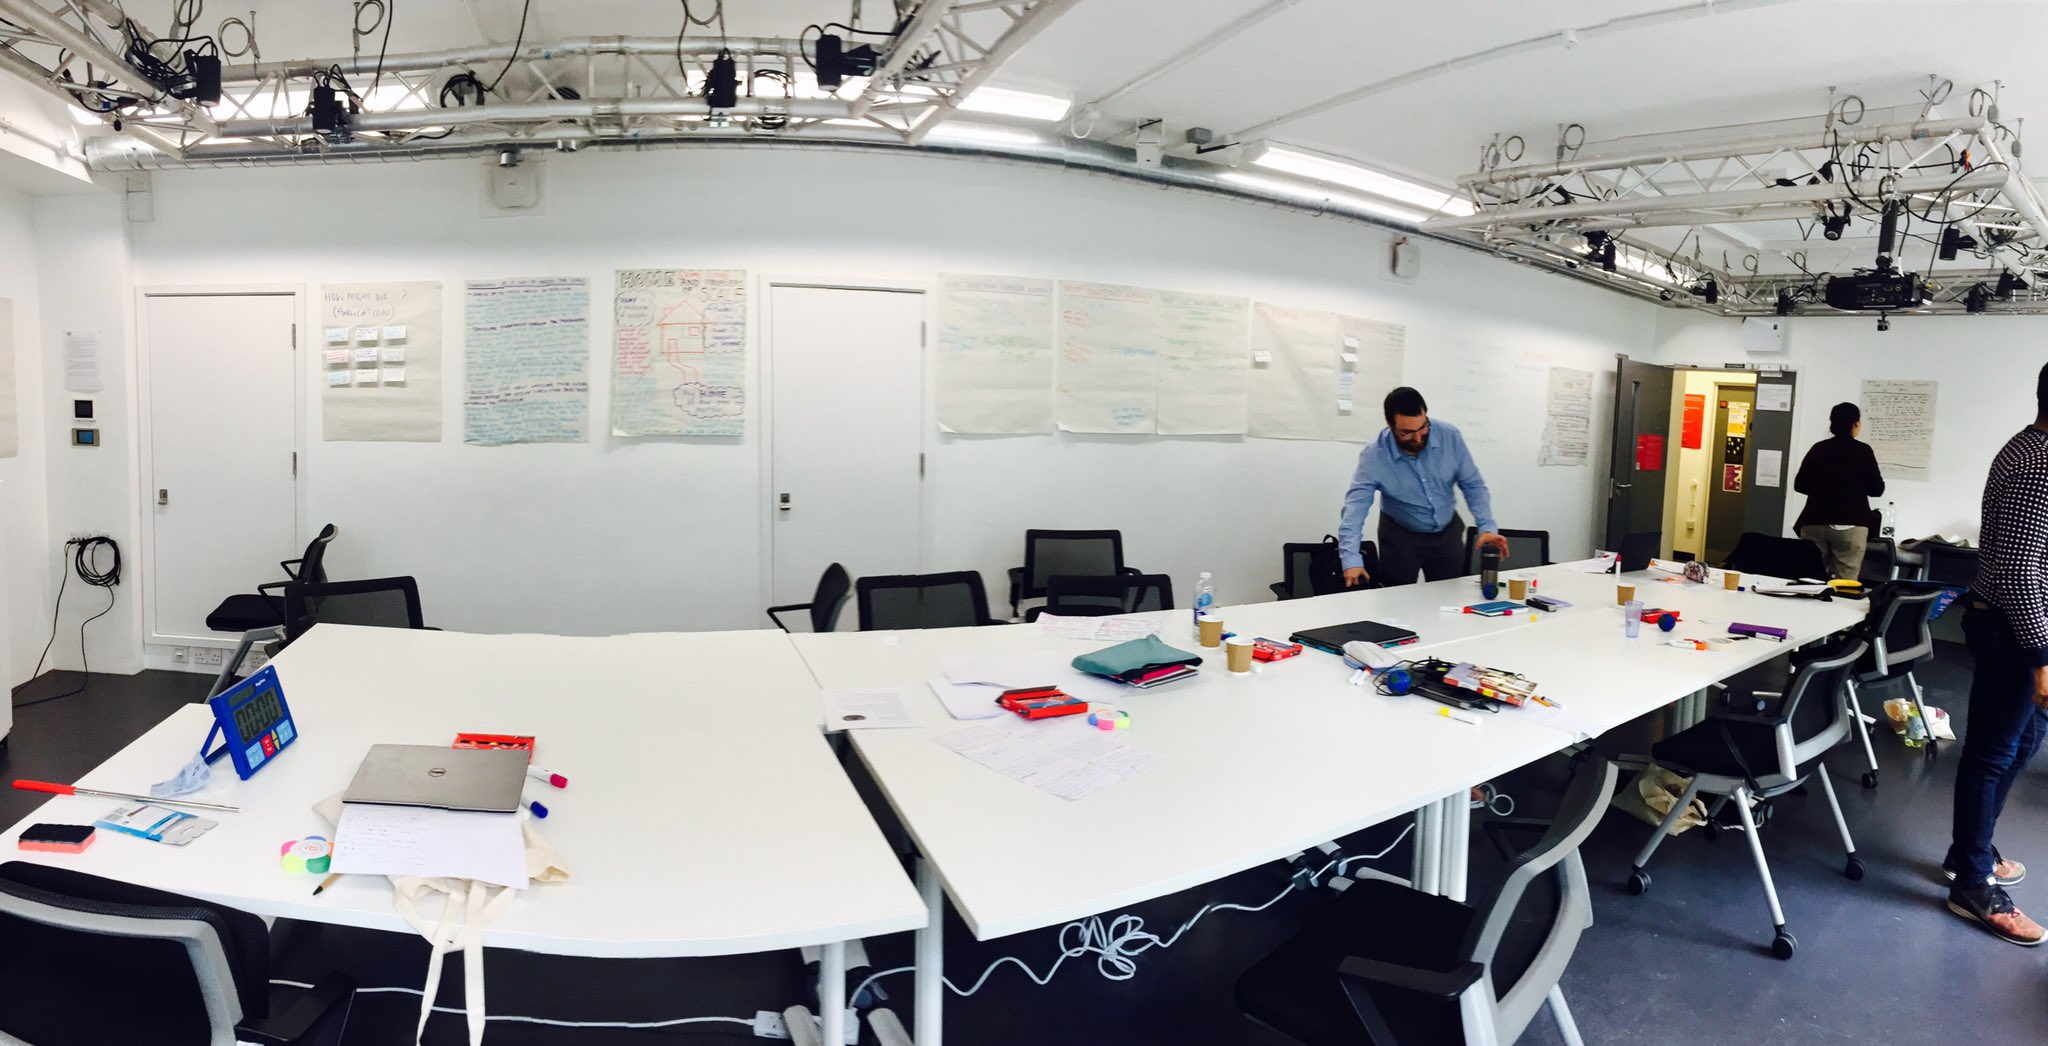 #hivebooksprint making great progress! https://t.co/I2zJNGkNRi